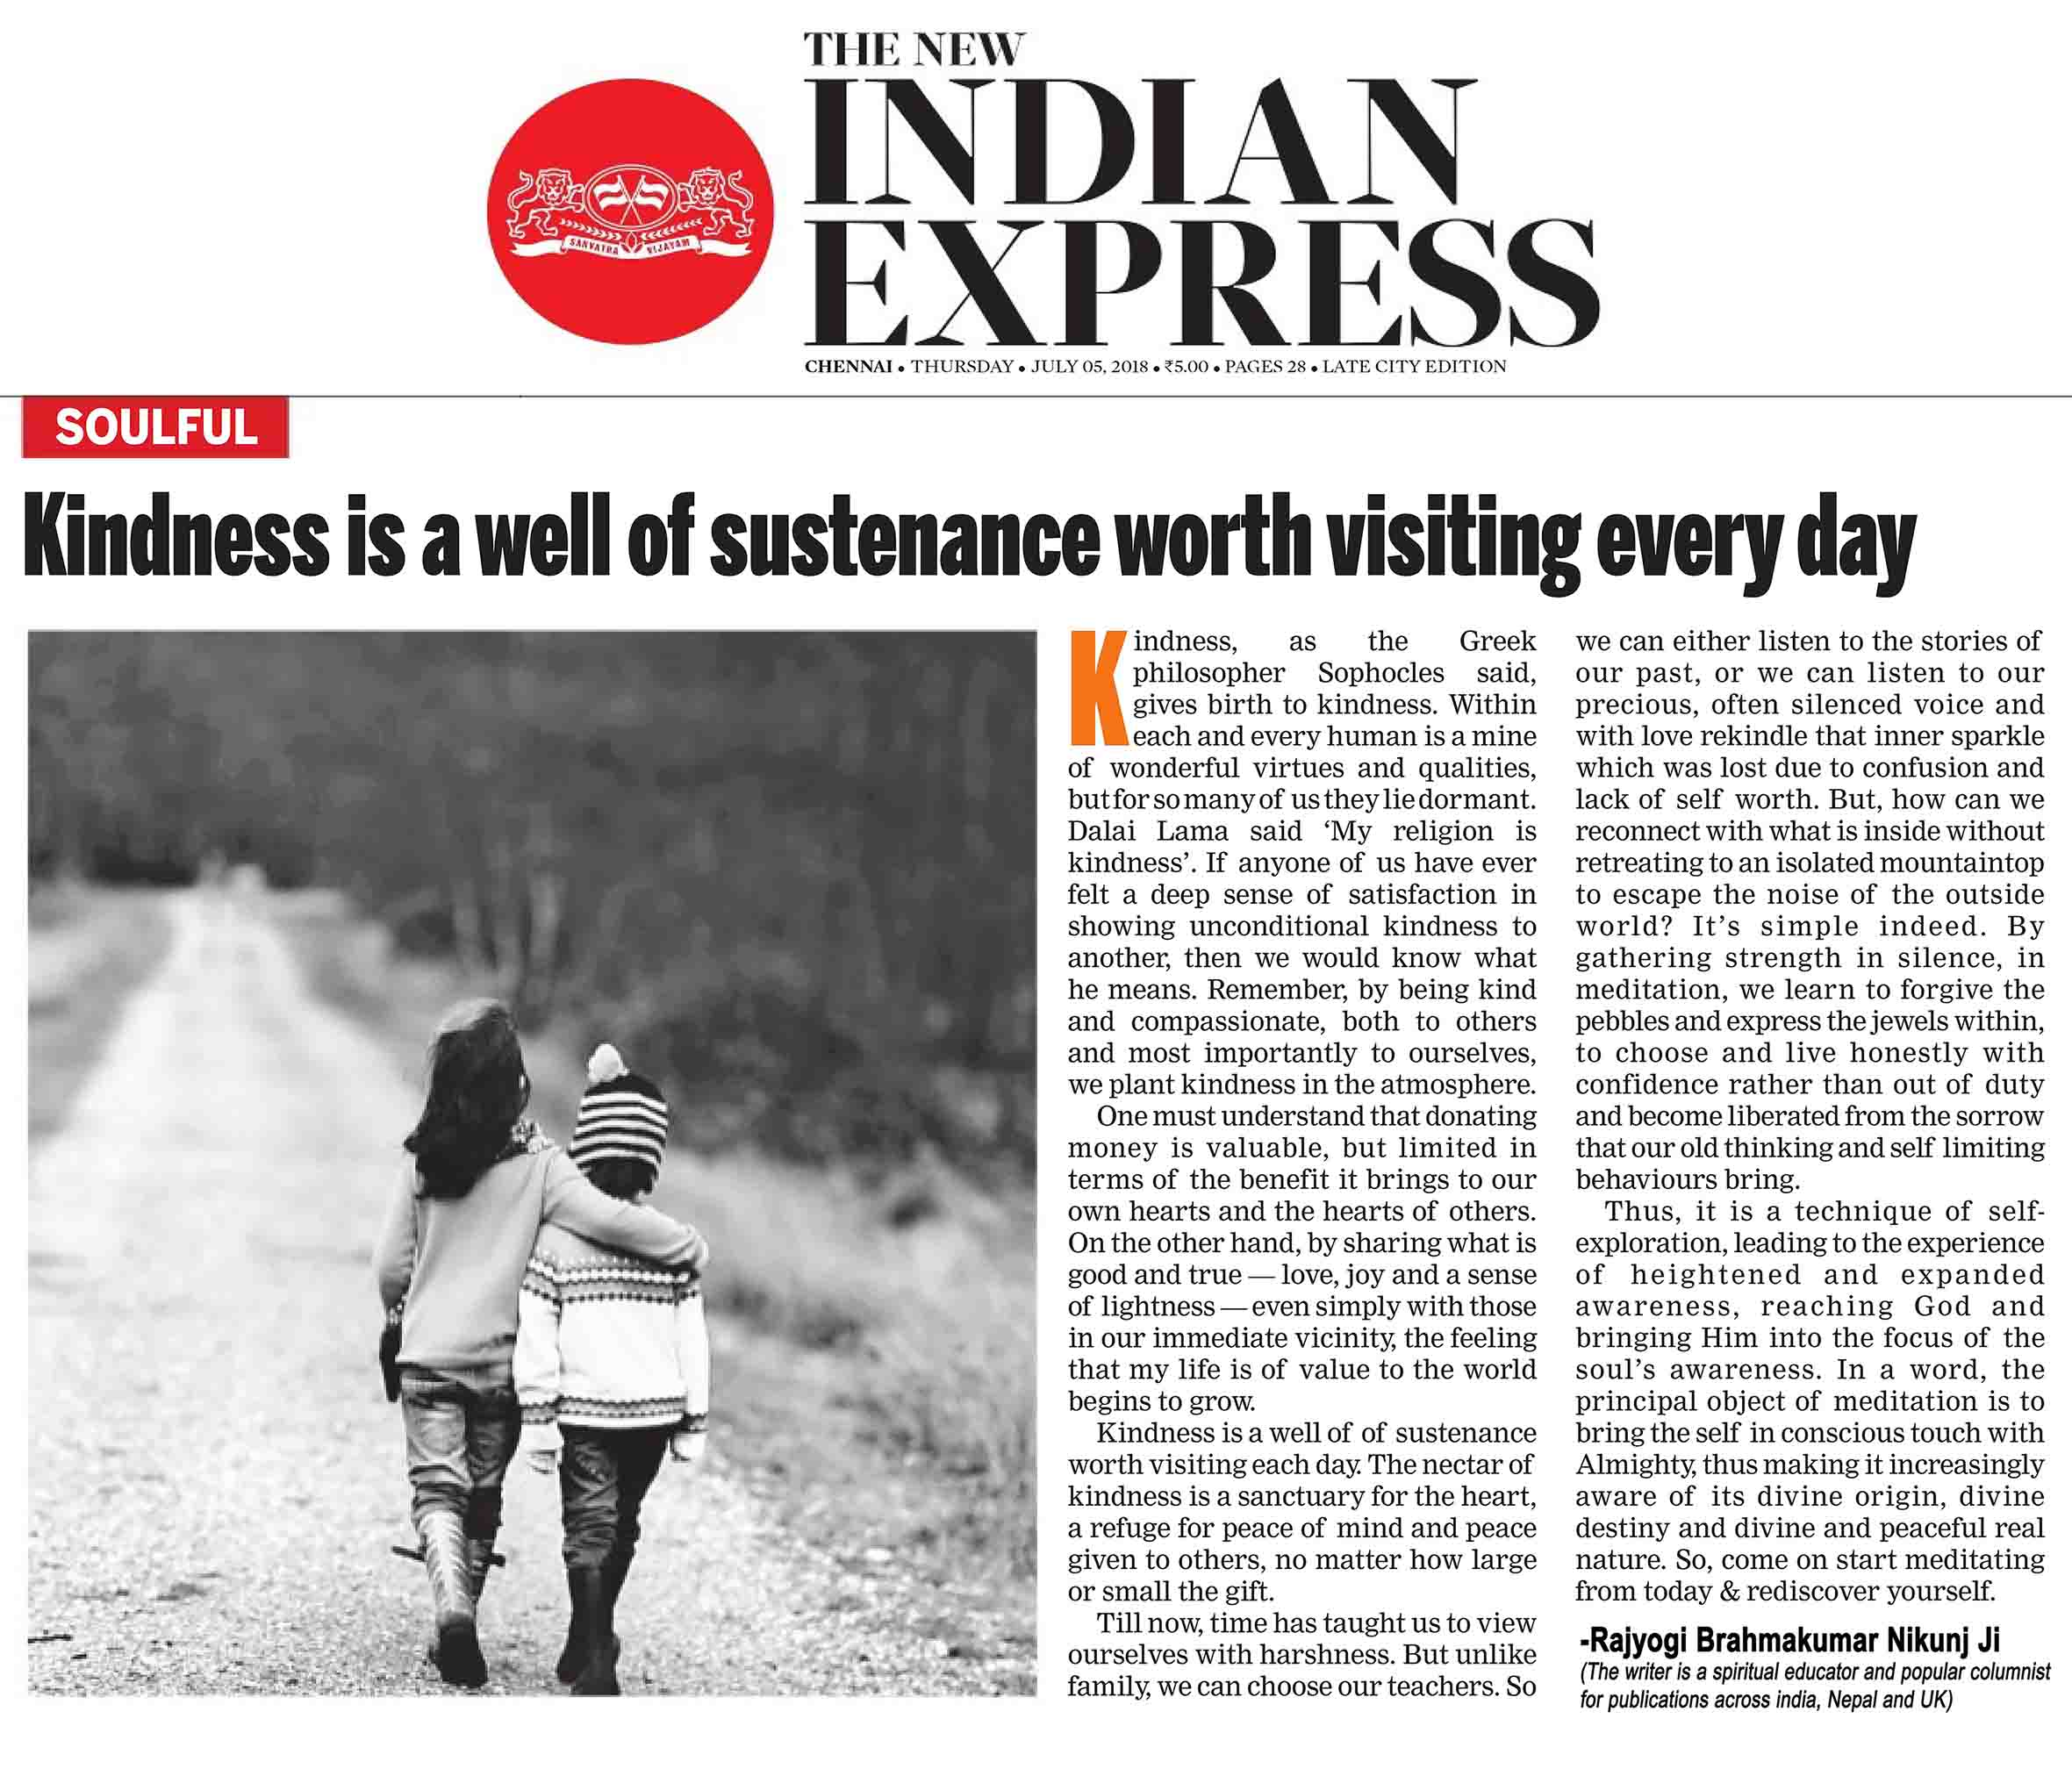 The New Indian Express 05. July 2018